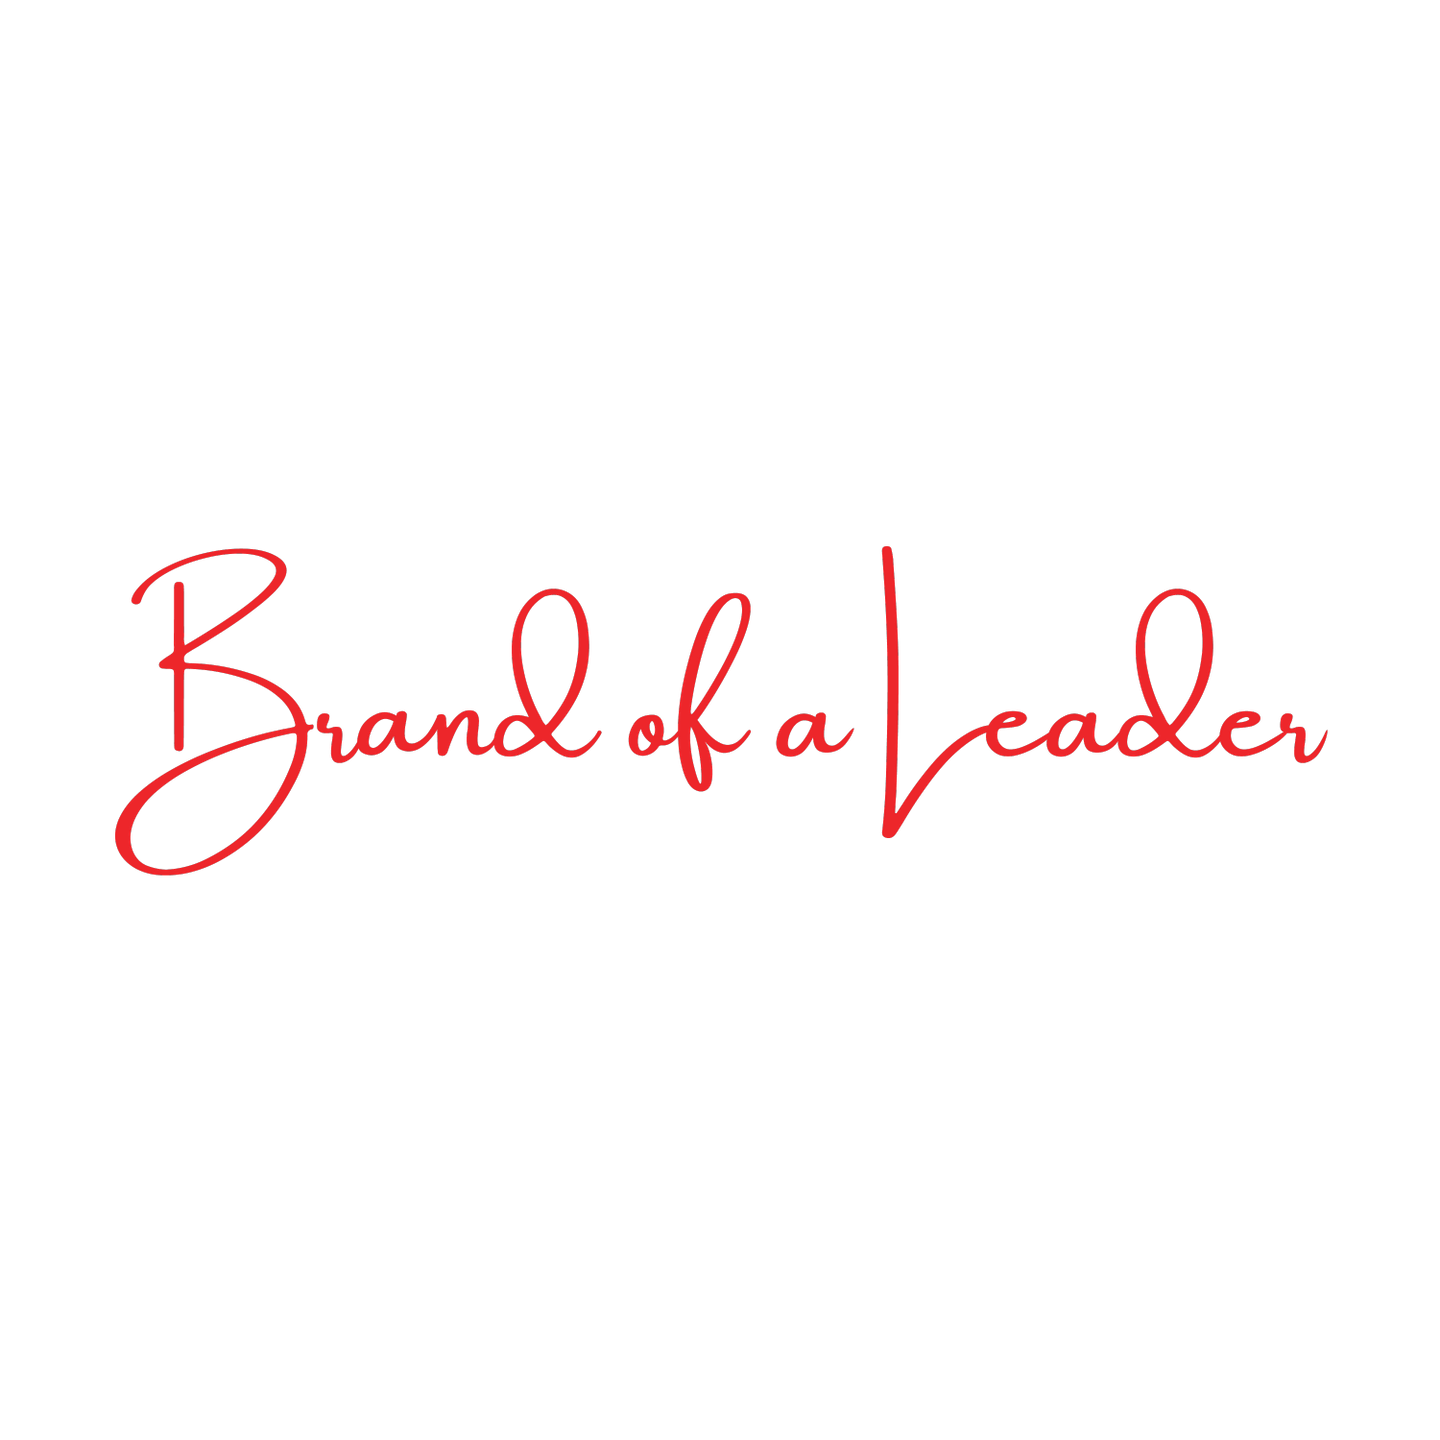 Brand of a Leader